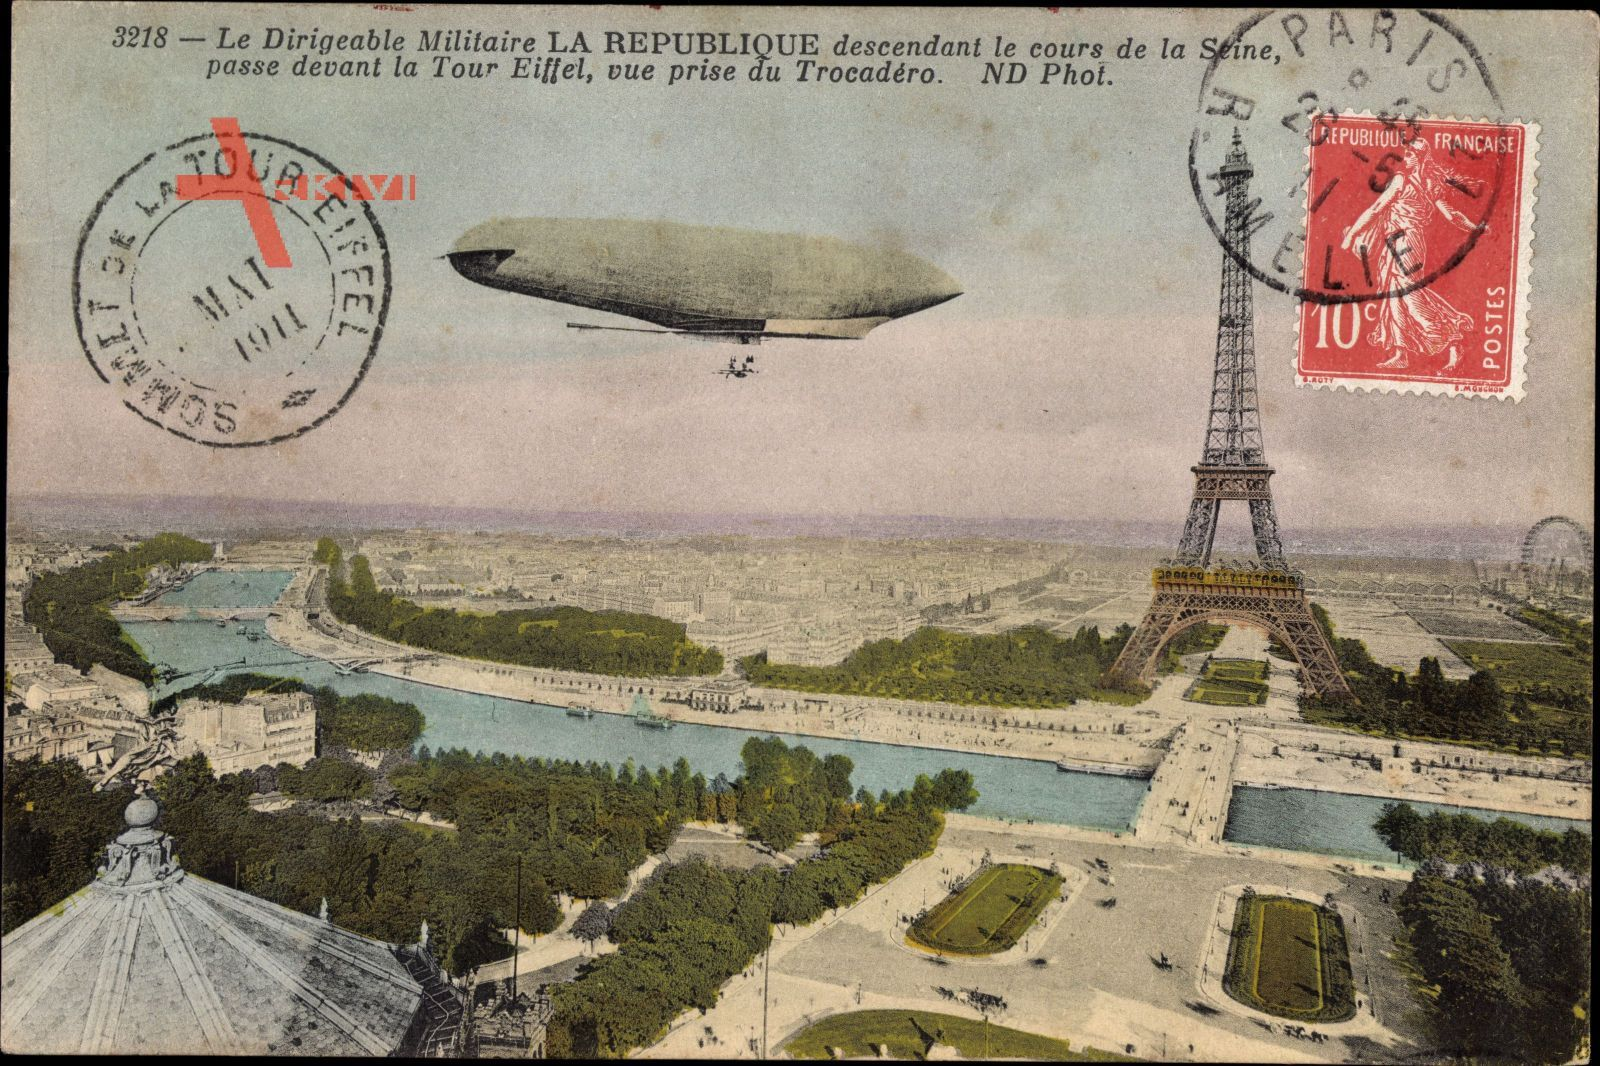 Paris, Dirigéable Militaire La Republique, Tour Eiffel, Eiffelturm, Zeppelin